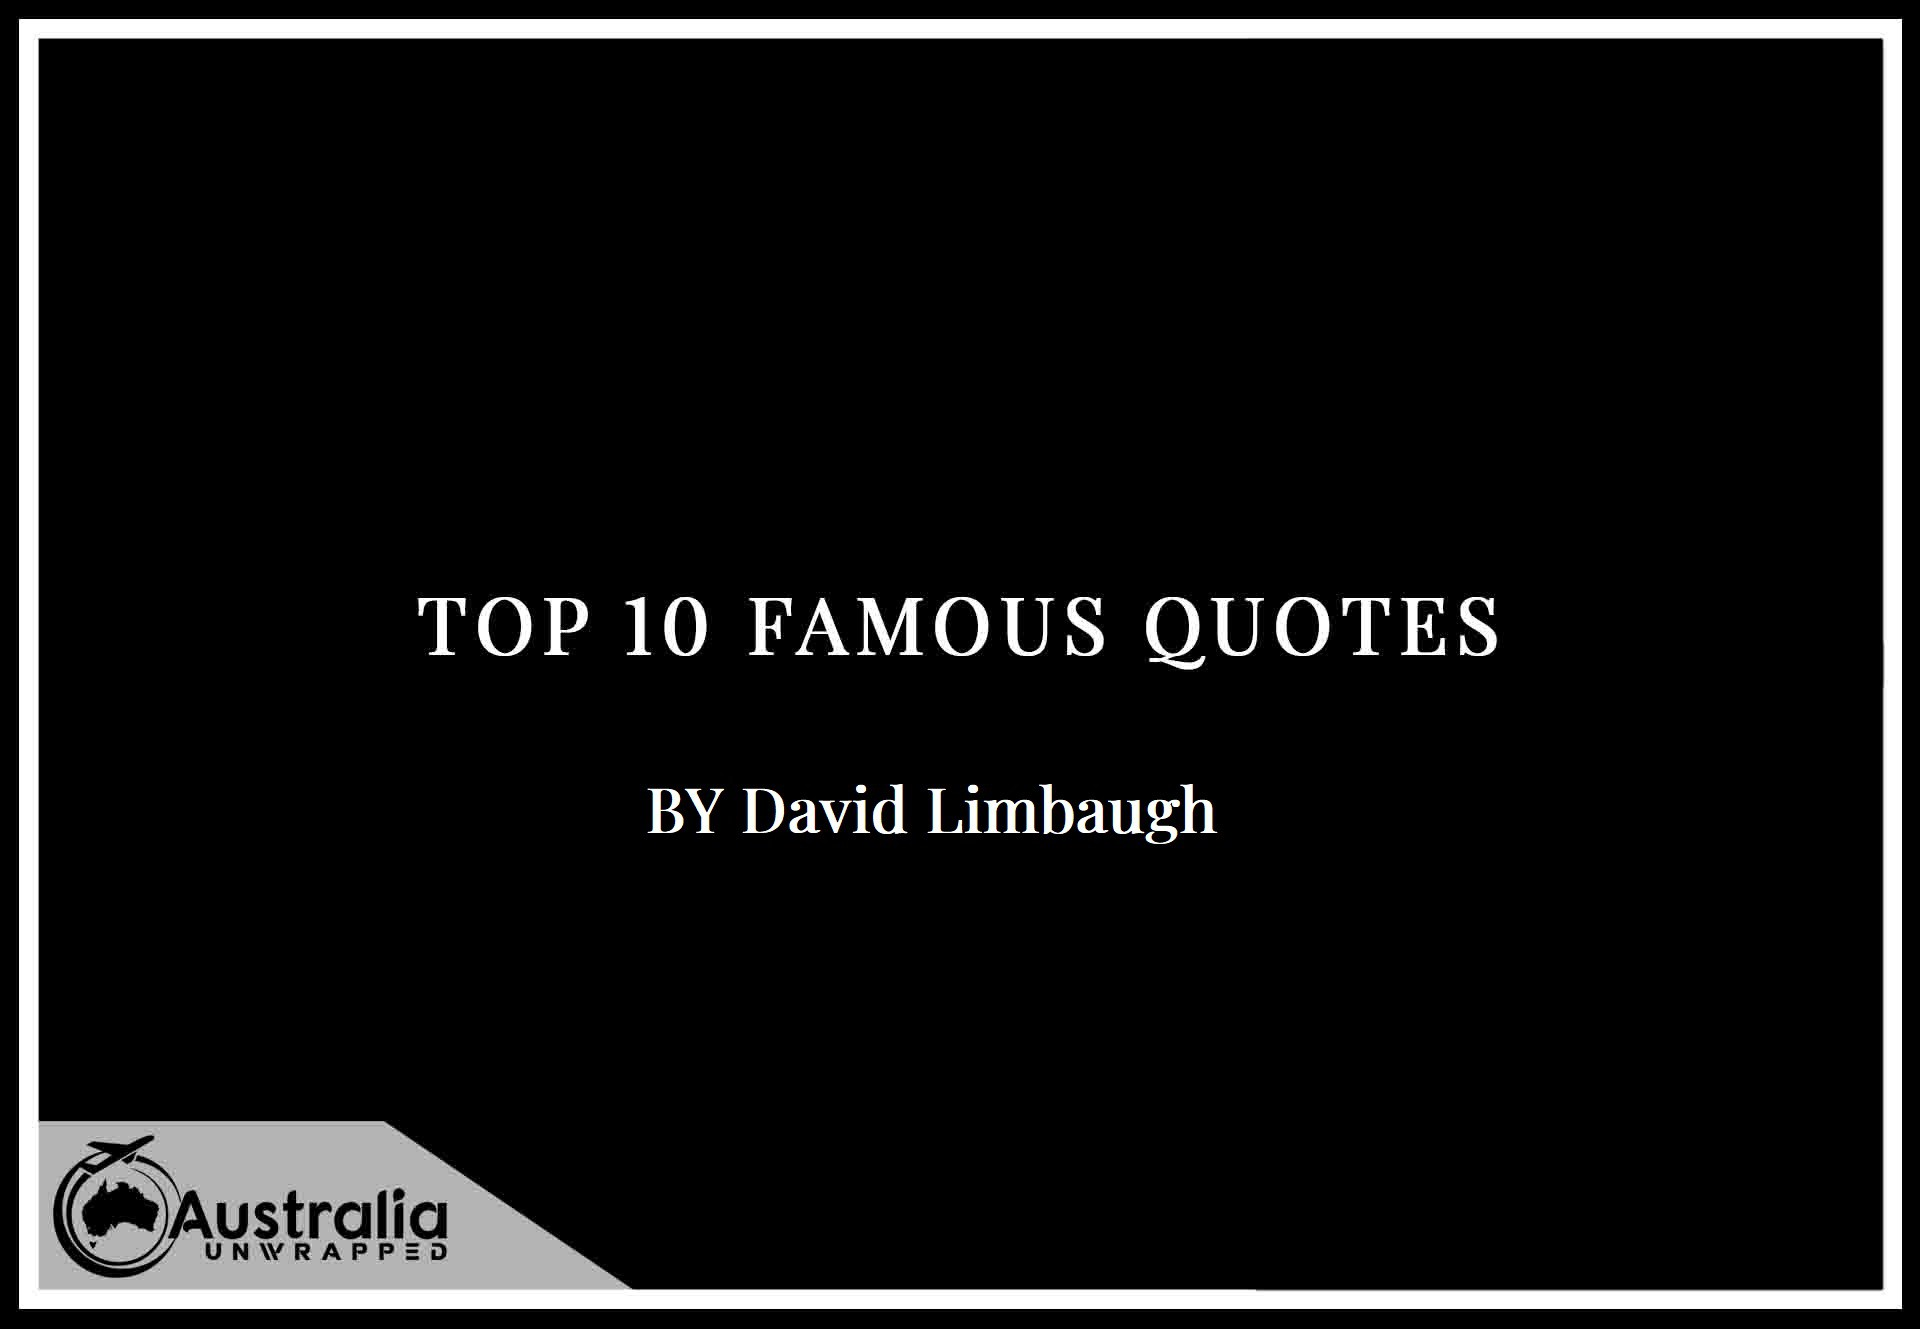 Top 10 Famous Quotes by Author David Limbaugh